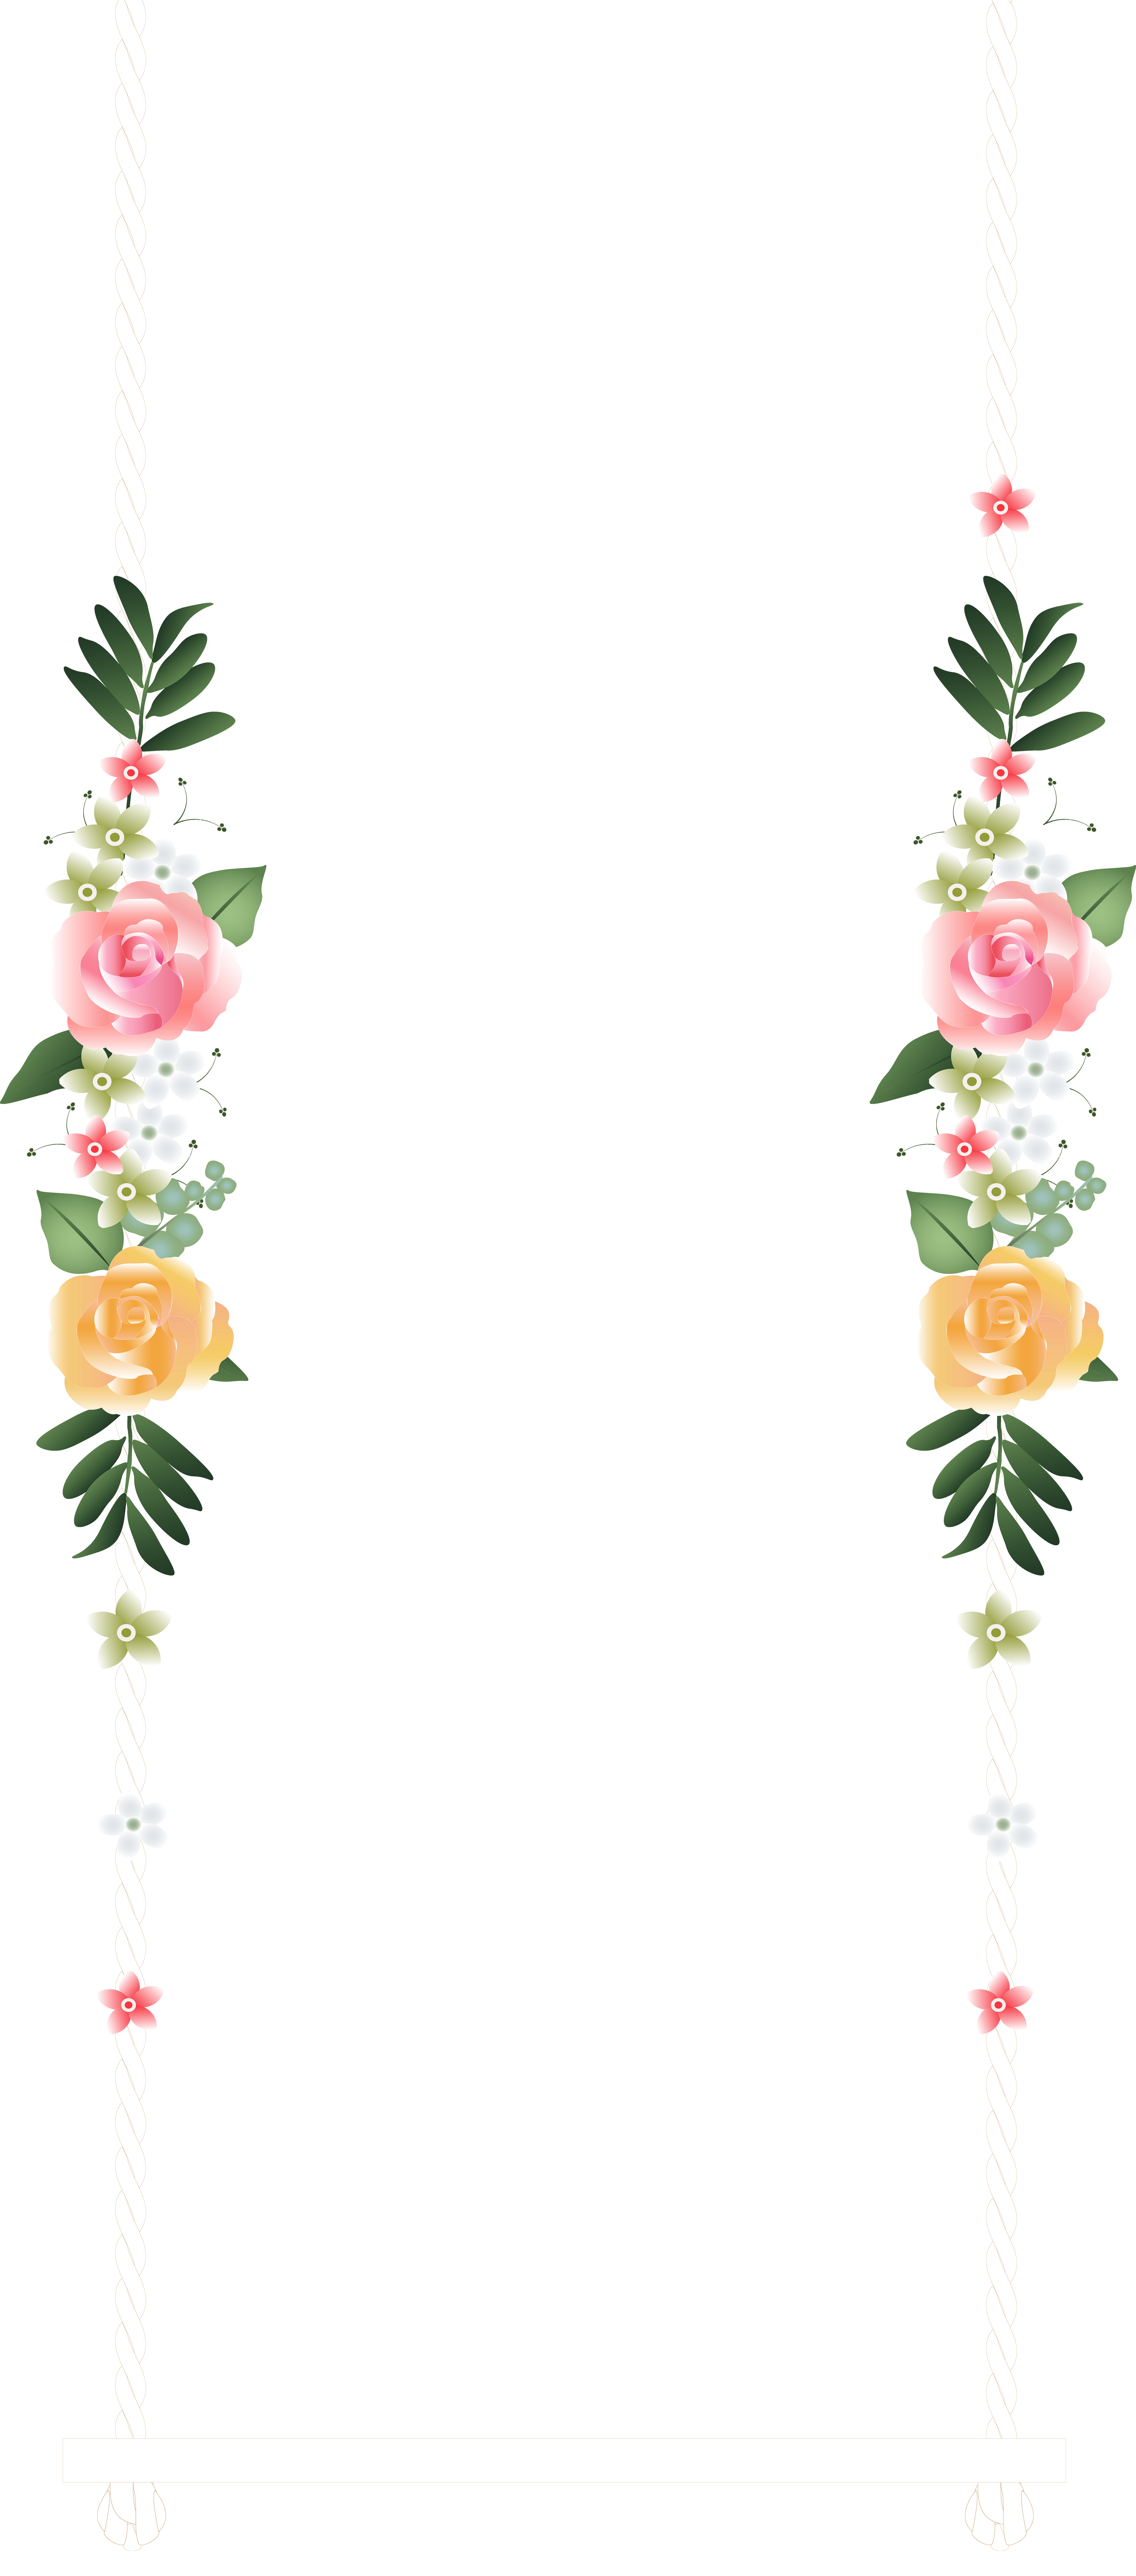 Clipart cars wedding. Swing png clip art